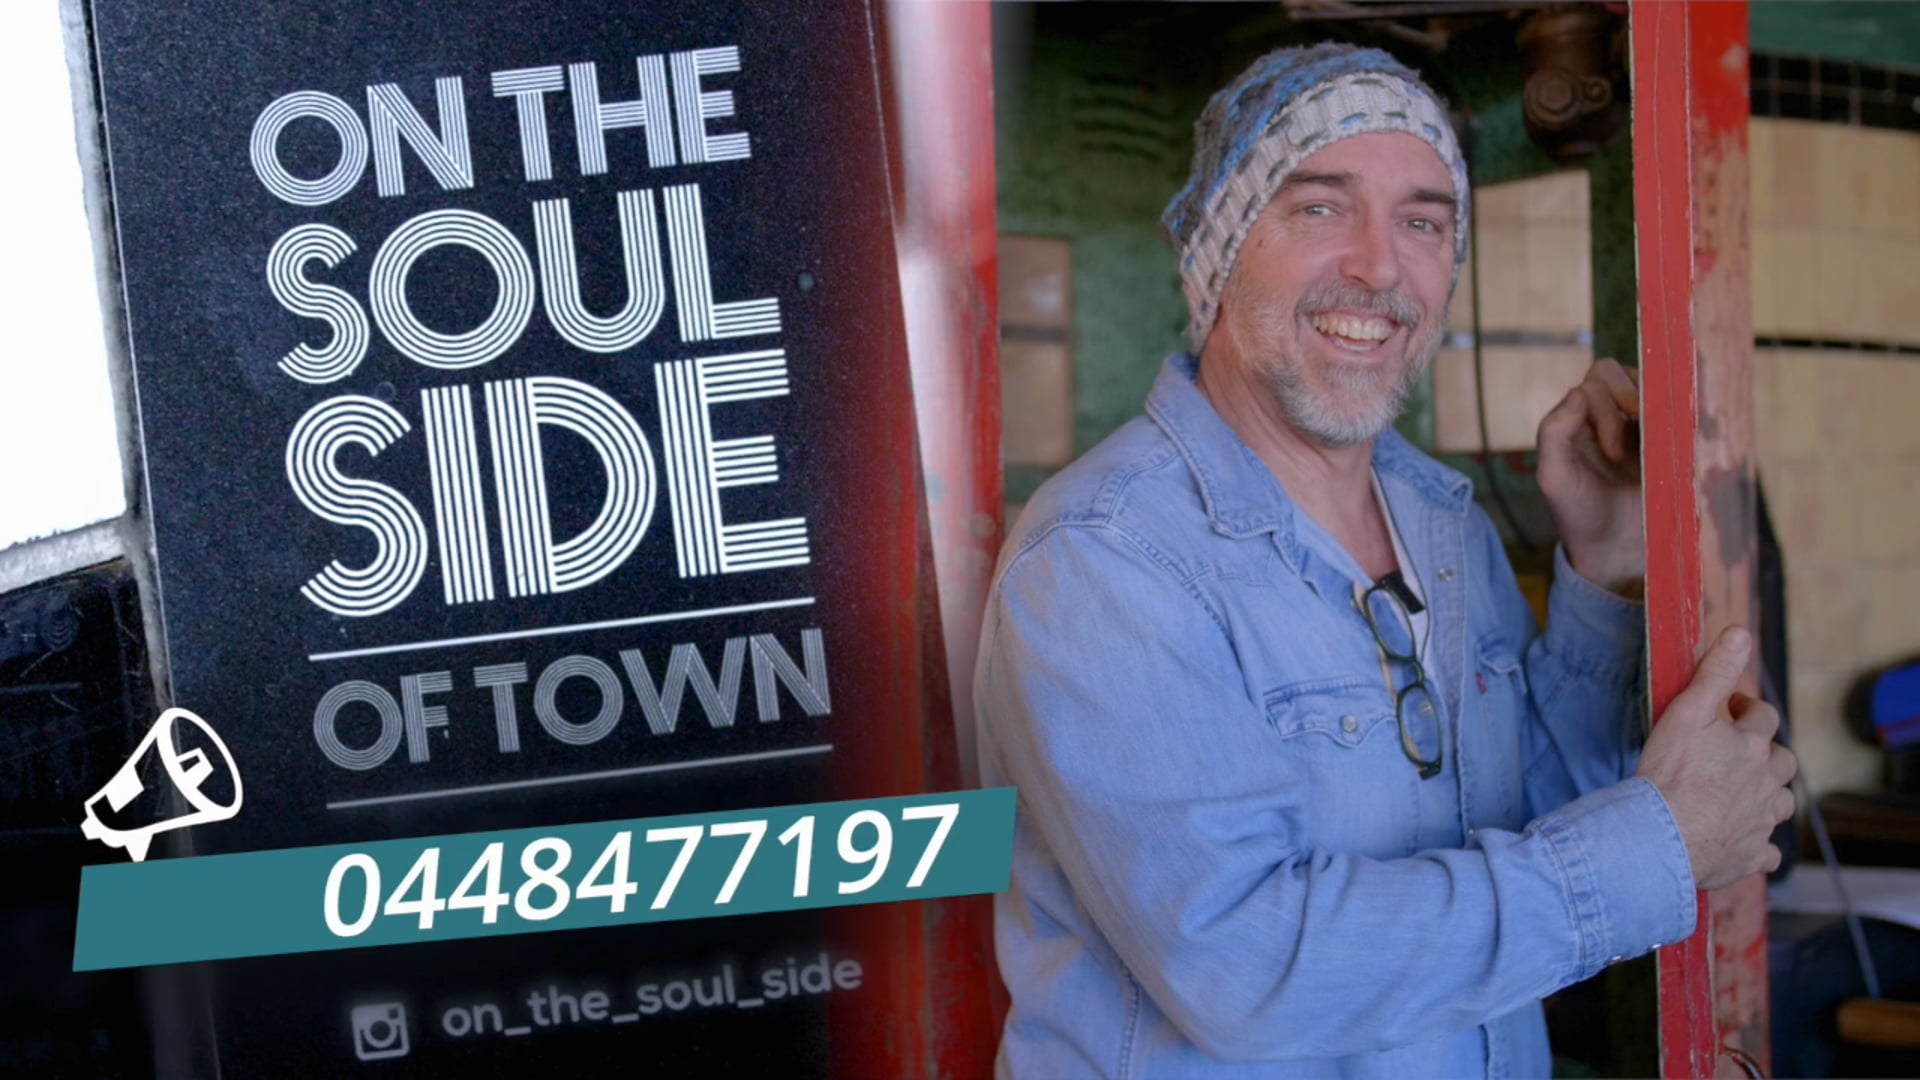 On The Soul Side Of Town - Katoomba